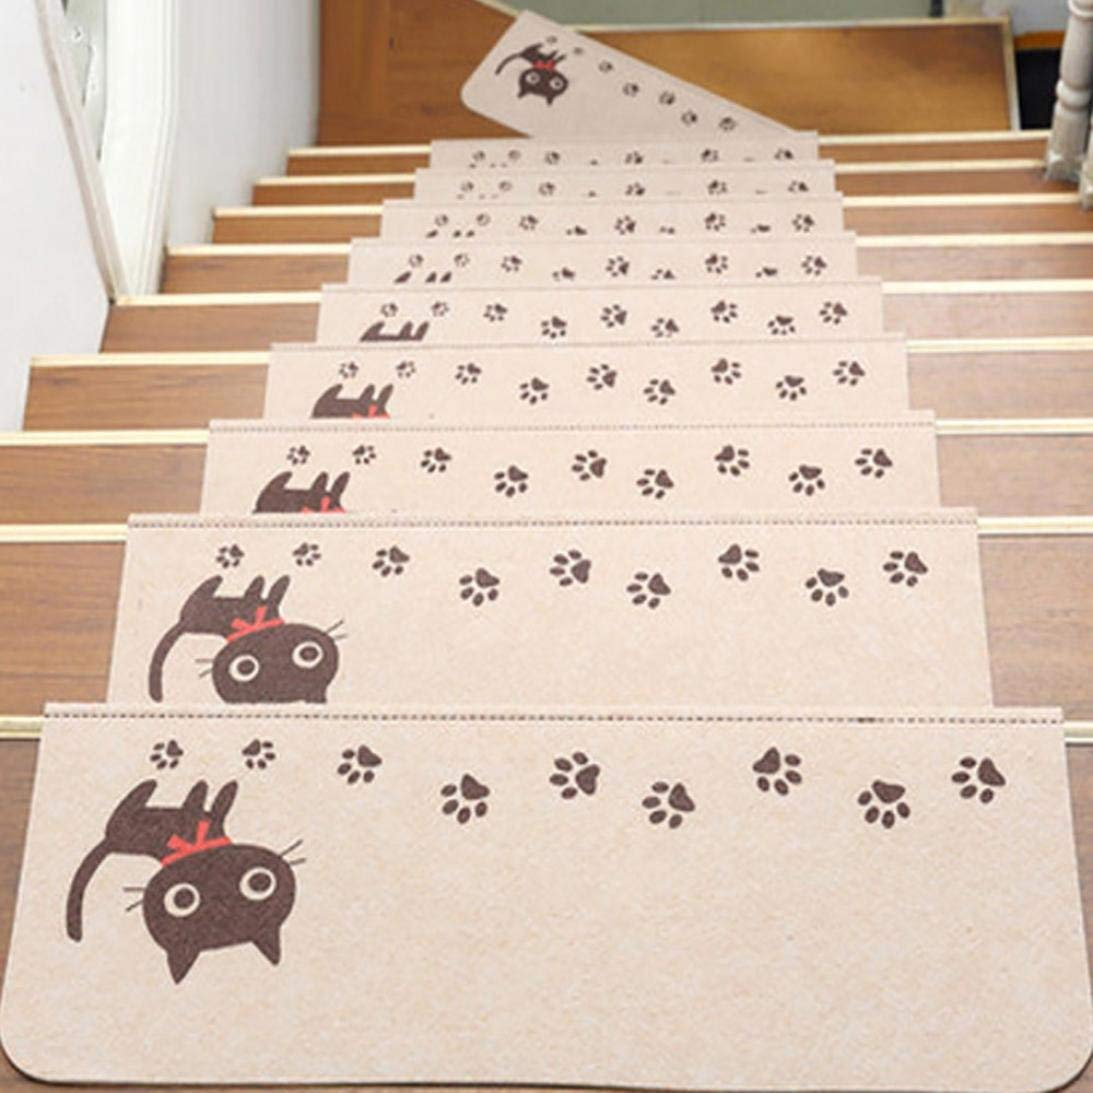 Step Basic Non-Slip Rubber Backing Skid-Resistant Carpet Stair With Cats Claws Pattern (Beige)